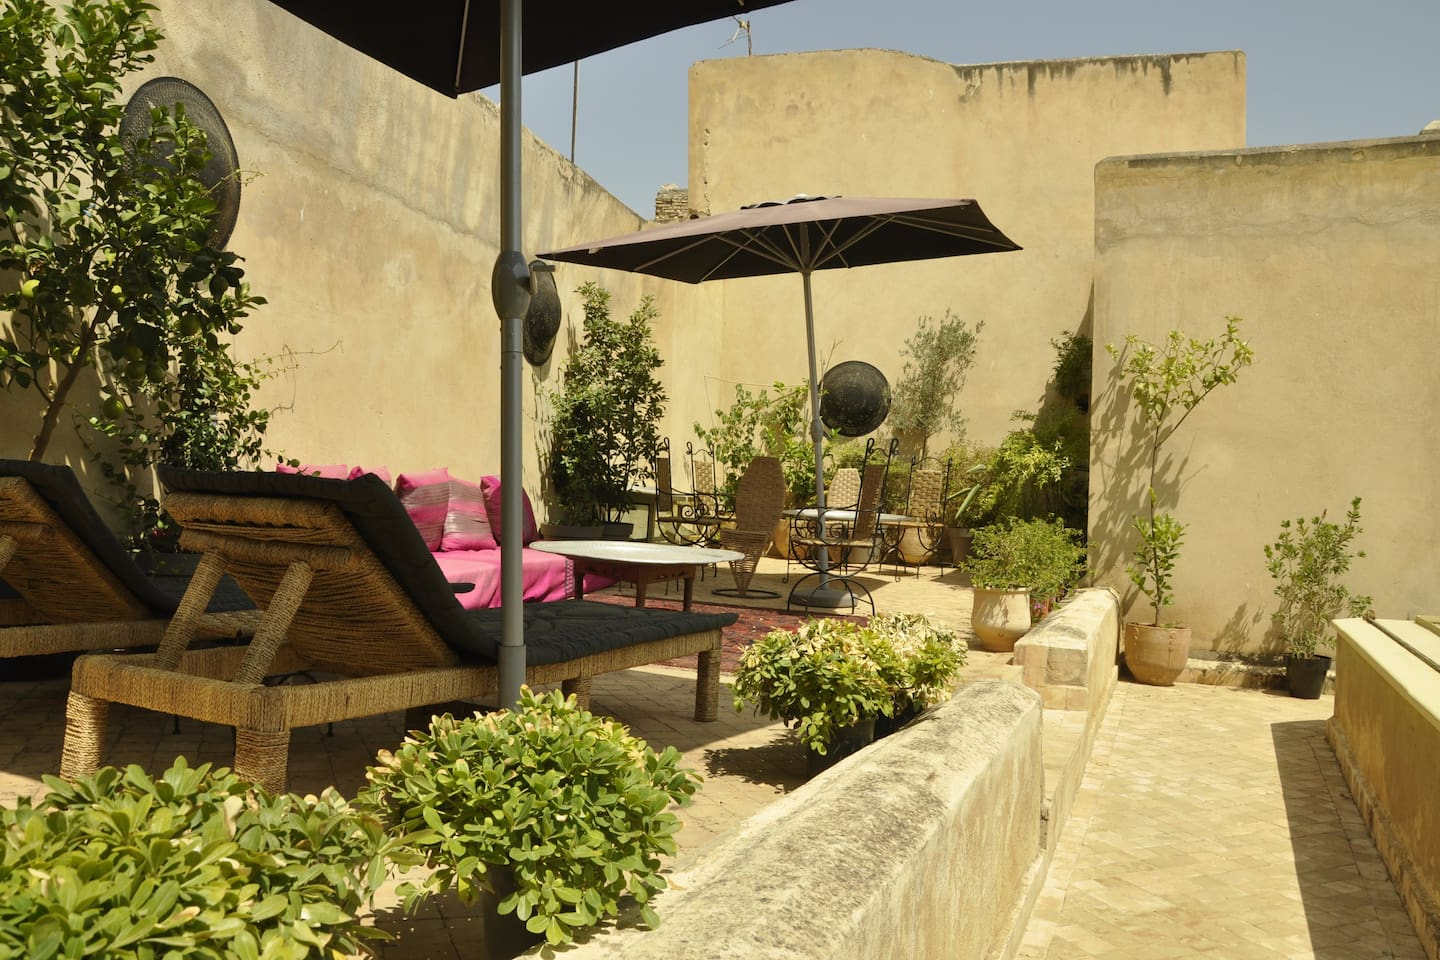 Dar7louyat - the terrace